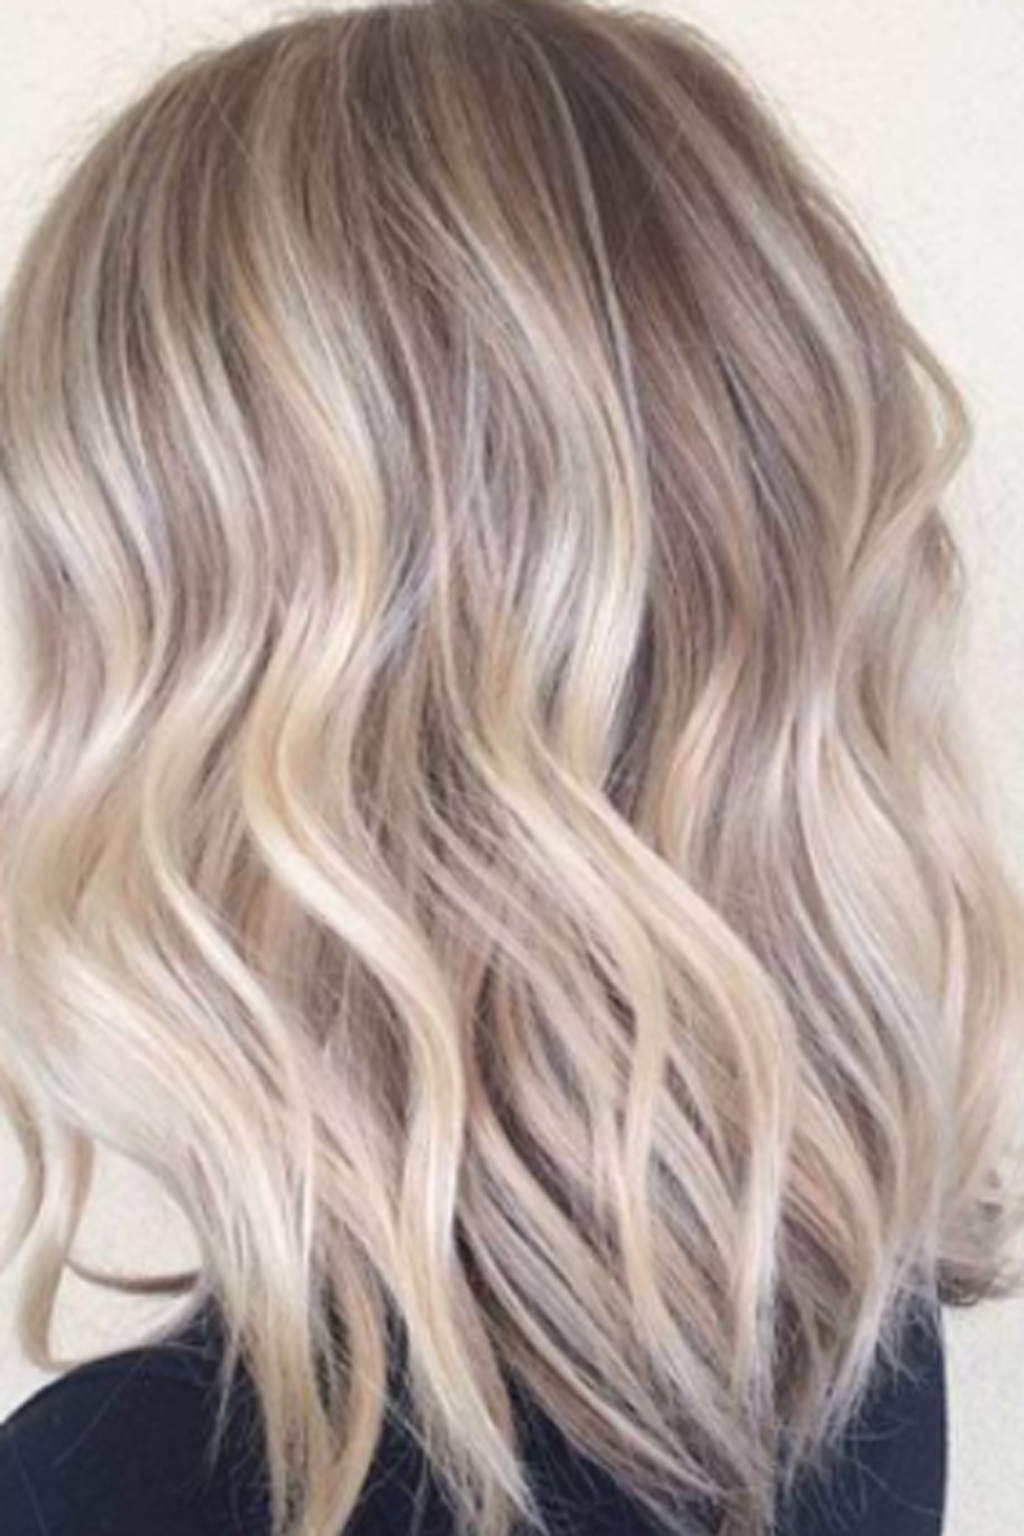 15 Gorgeous Hair Colors That Will Be Huge In 2018 | Gorgeous Hair In Angelic Blonde Balayage Bob Hairstyles With Curls (View 10 of 25)